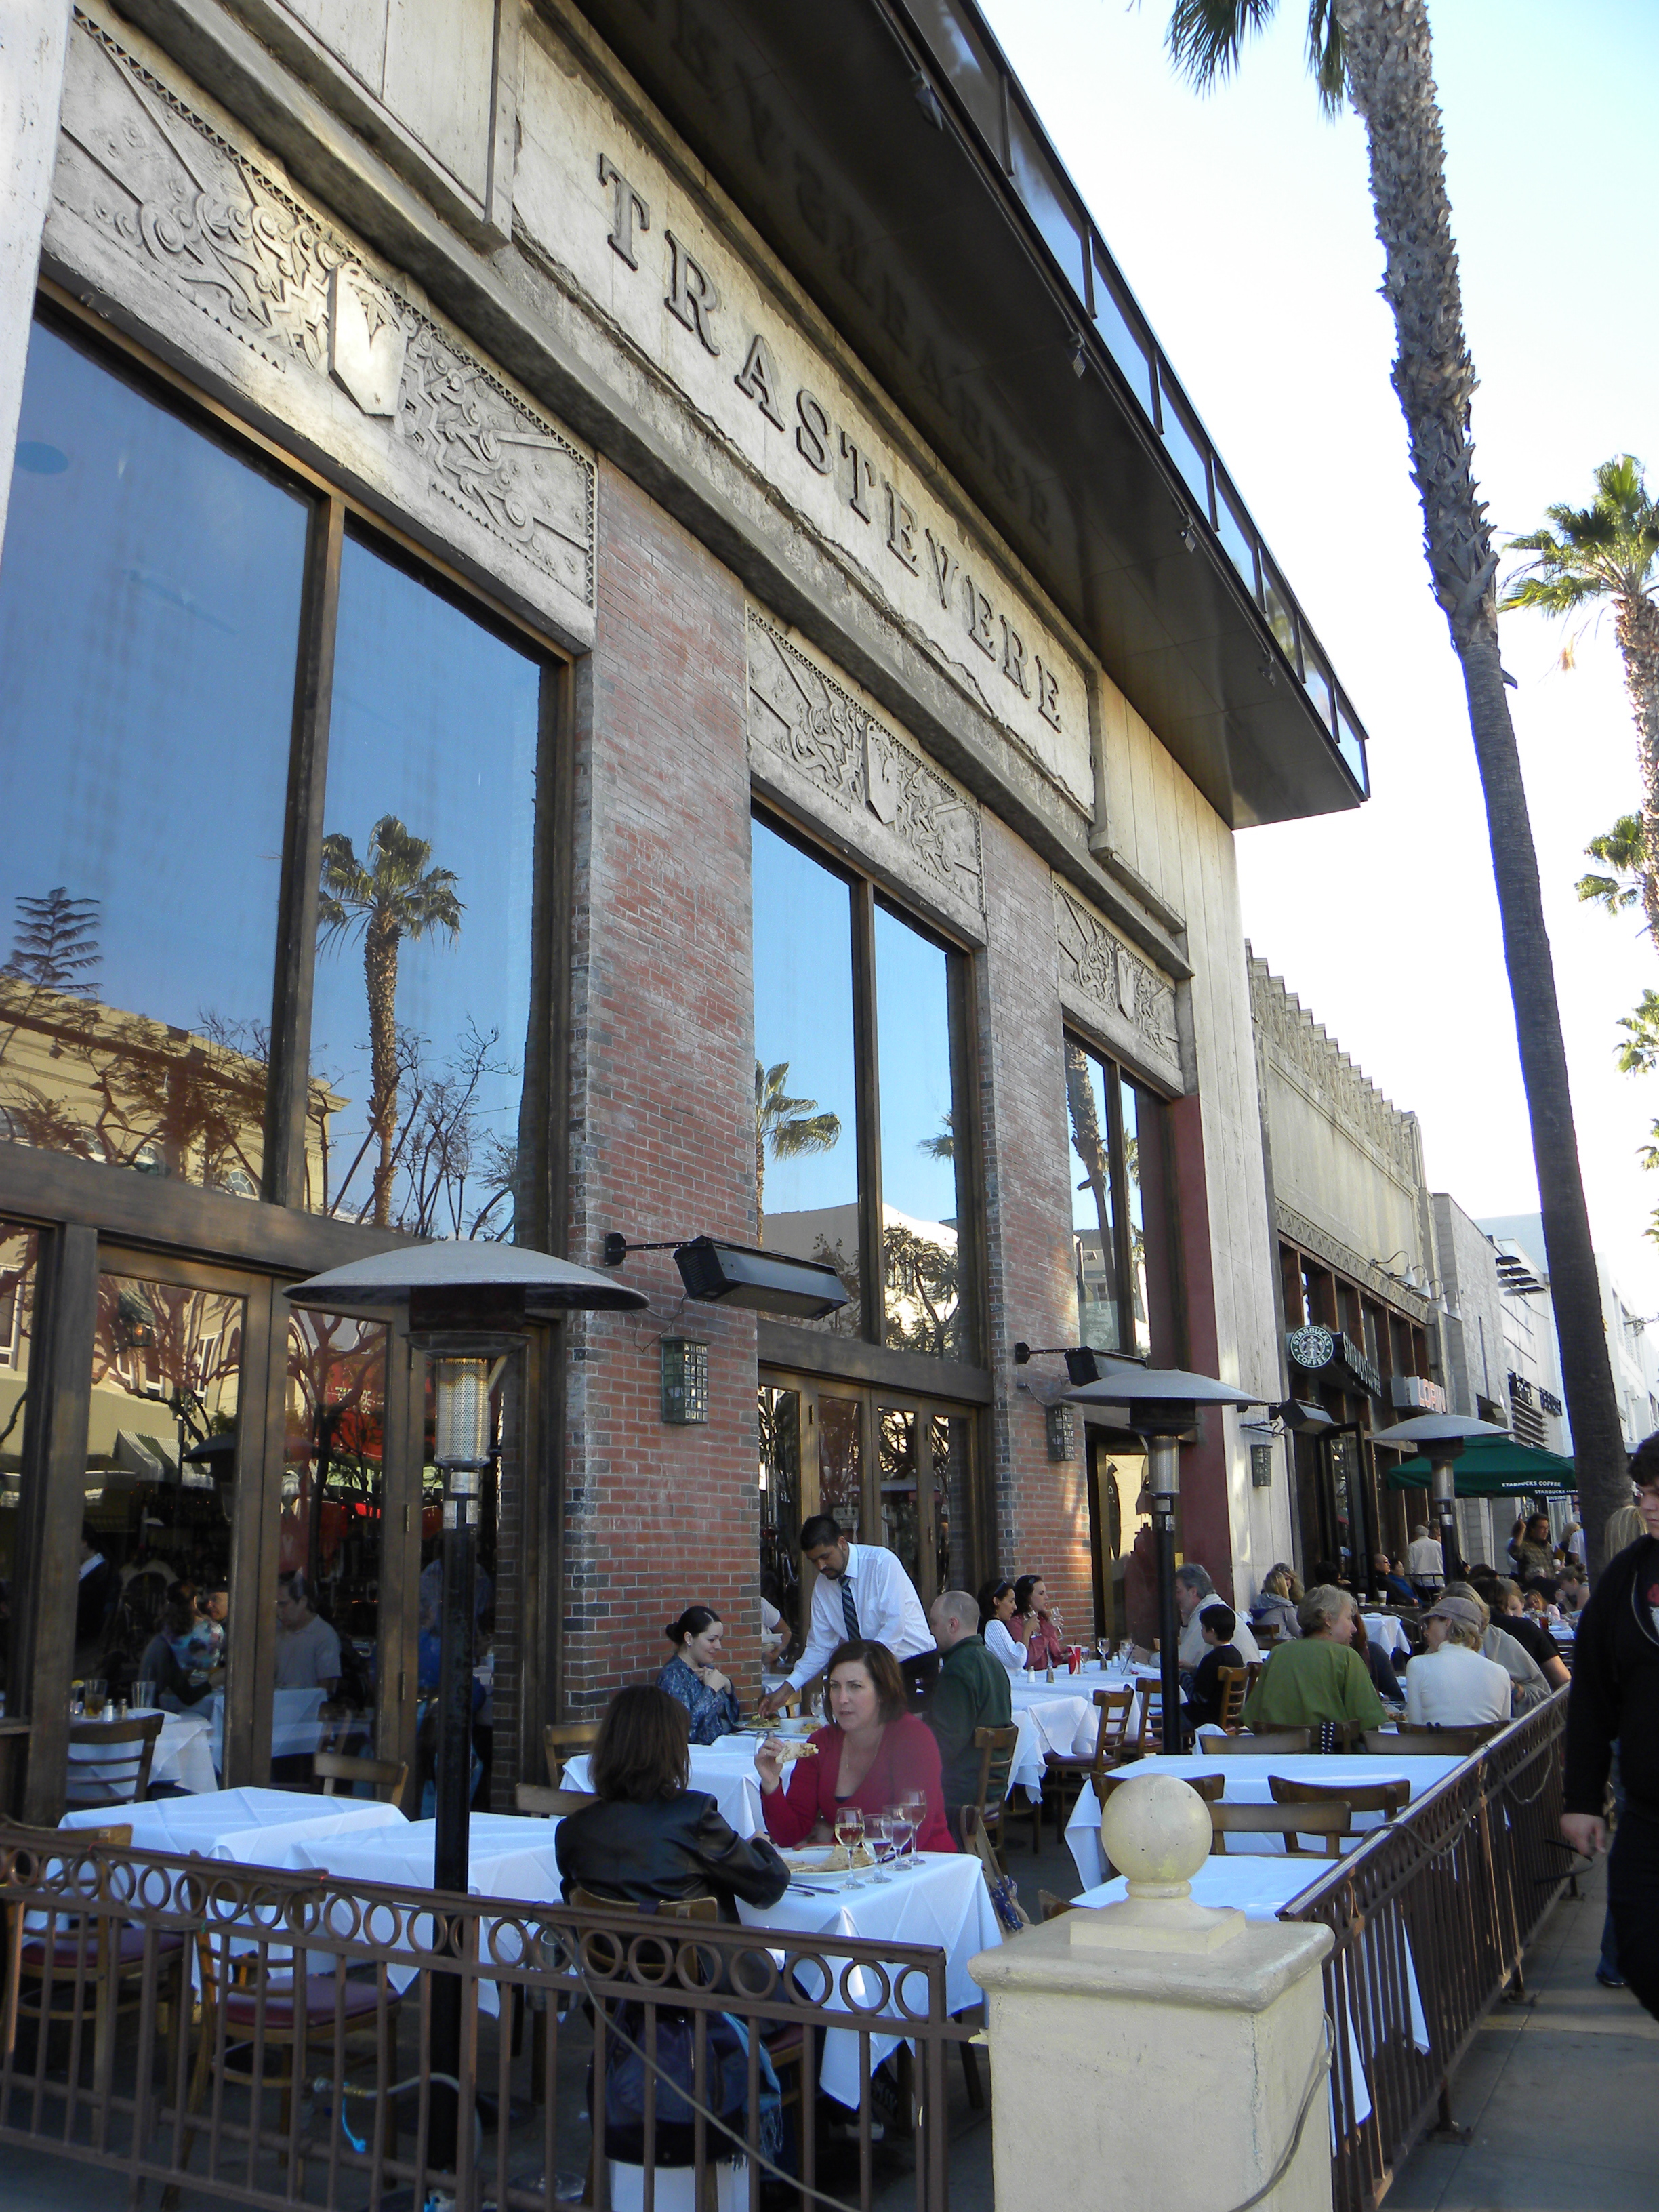 Trastevere Ristorante Italiano Is One Of Many Restaurants On The Busy 3rd Street Promenade In Santa Monica Carlo And I Were Meeting A Friend His For